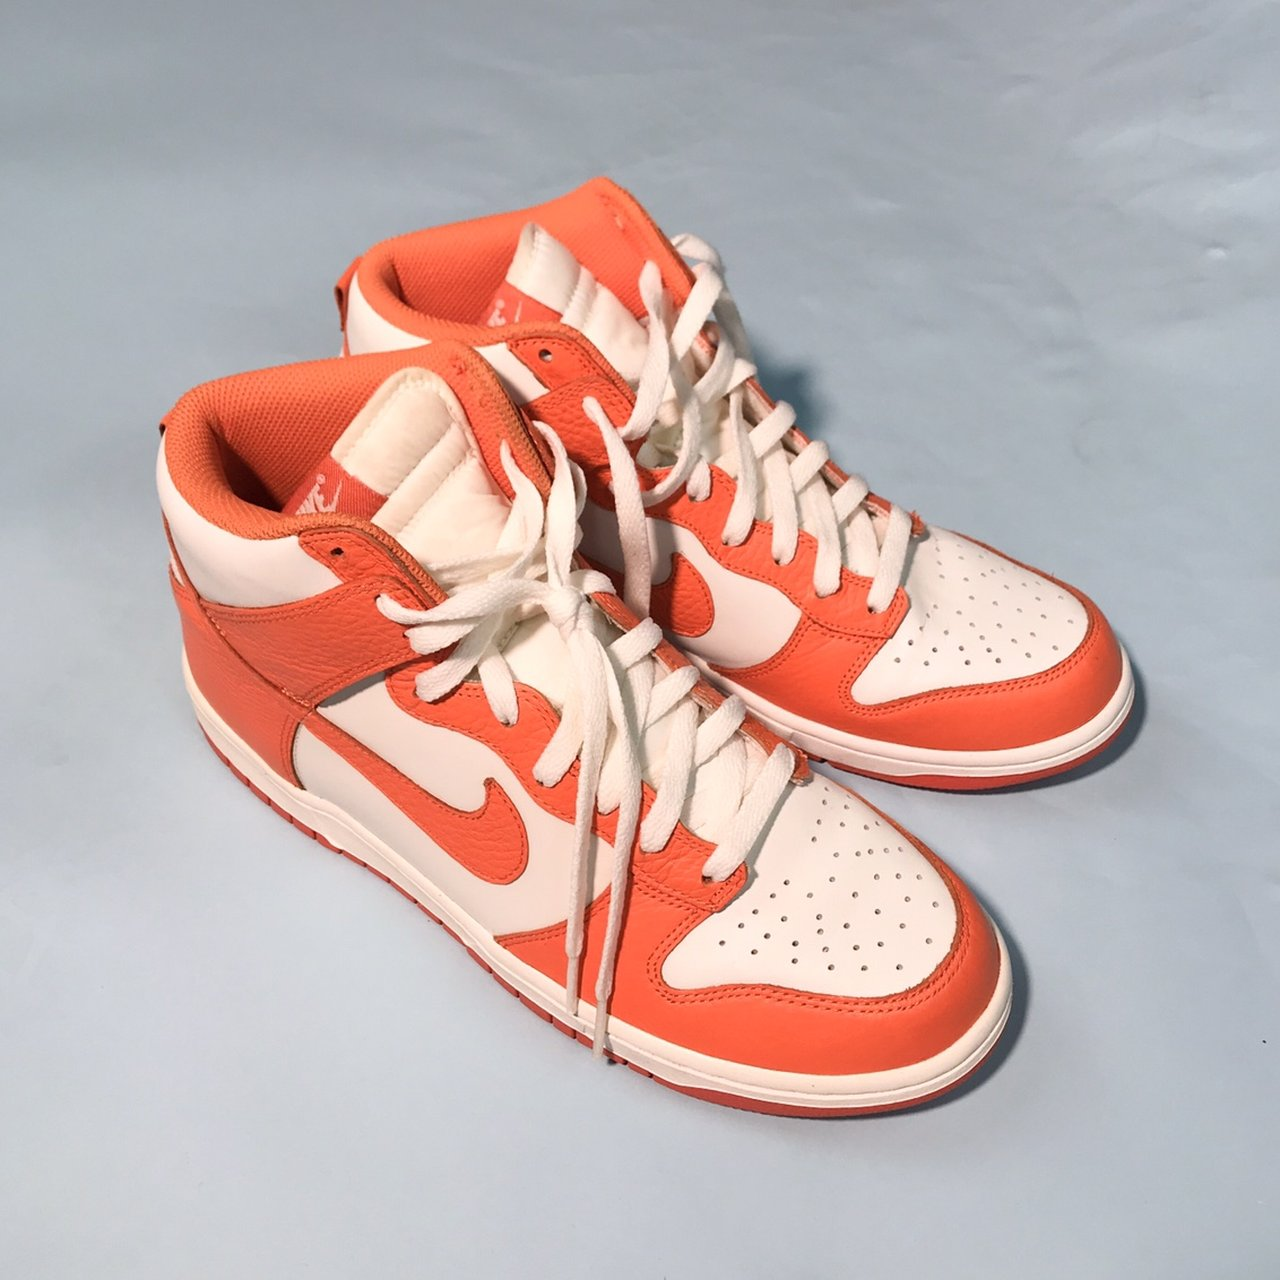 """low priced 3f851 5949a Nike Dunk High """"Be True to Your School"""" White Orange. Size - Depop"""